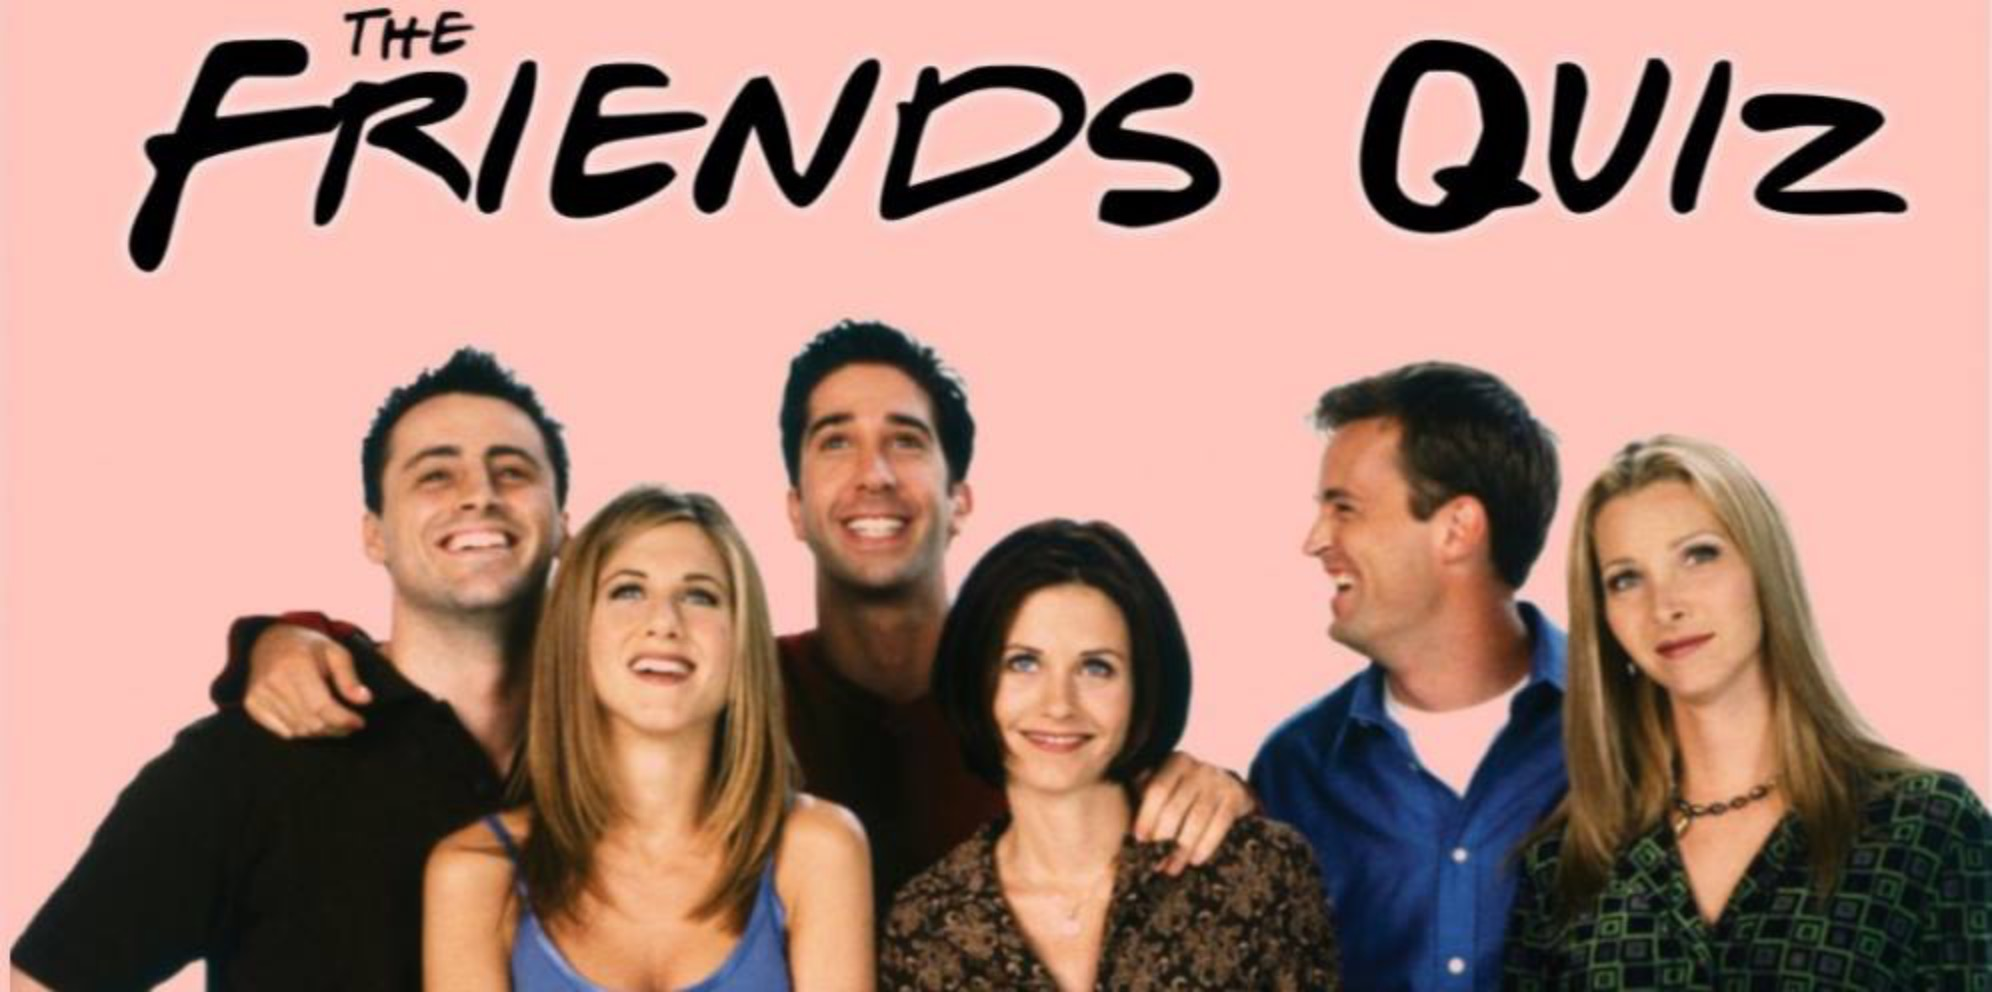 Friends Bumper Quiz - Quick Questions